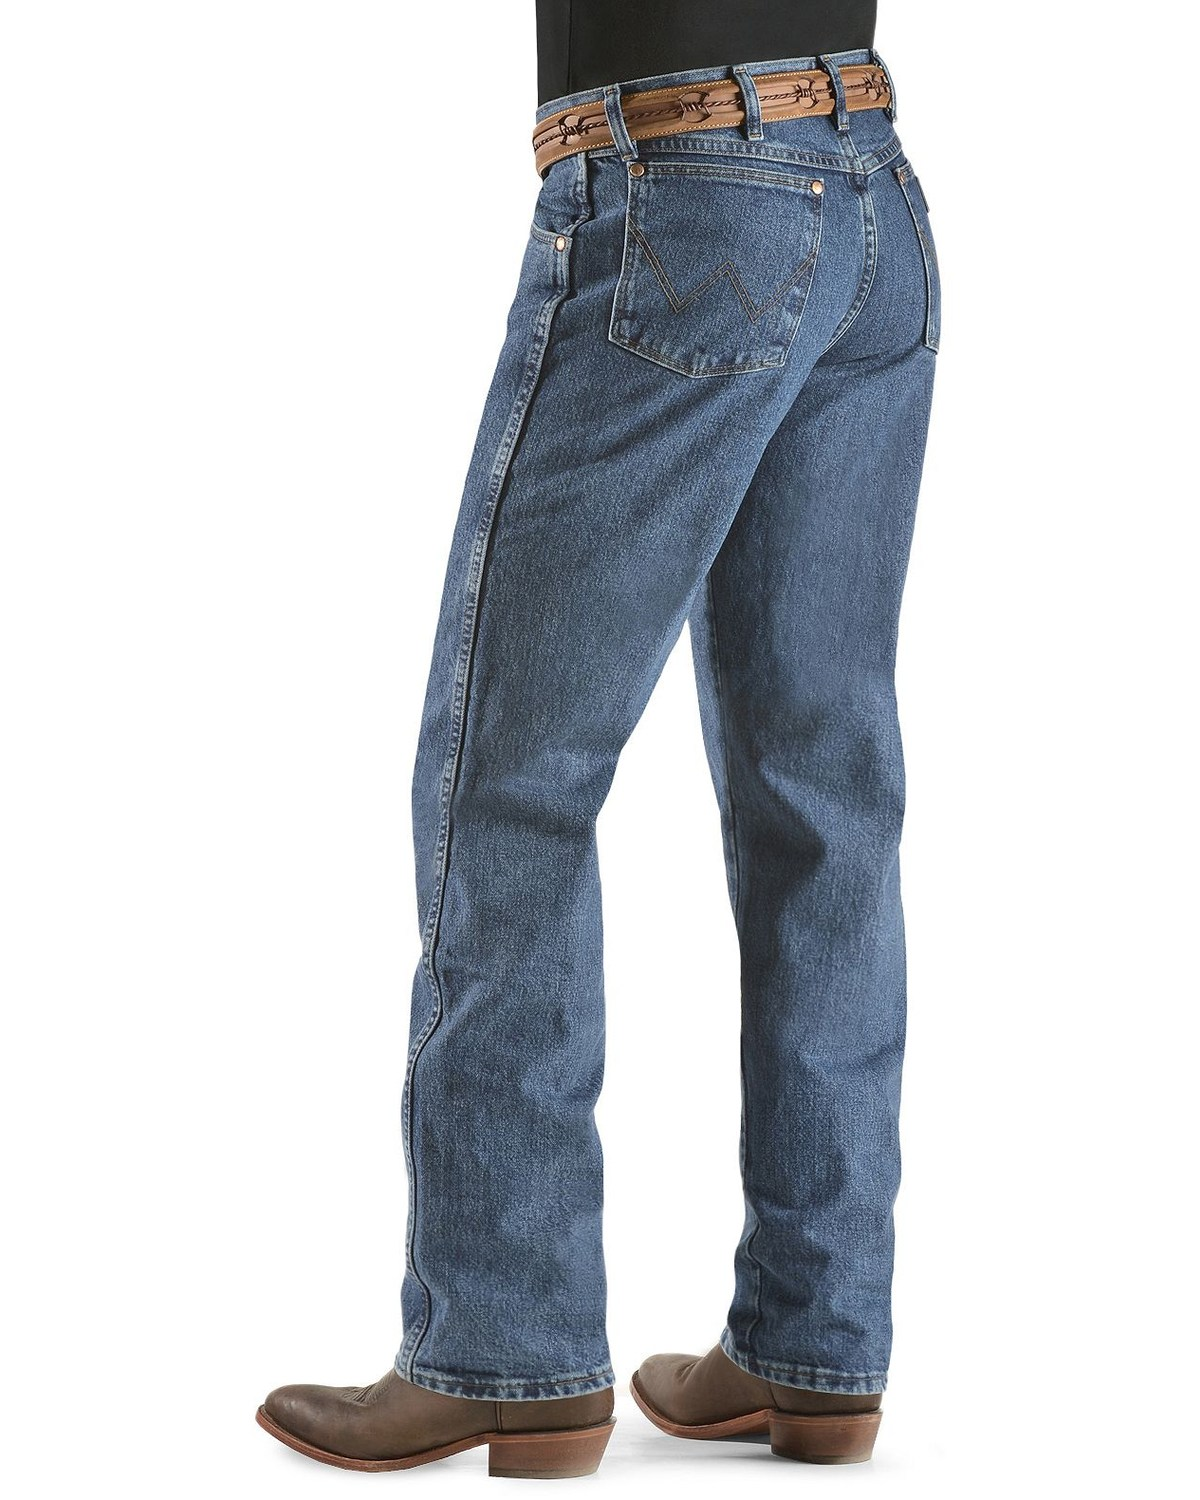 83458c47 Zoomed Image Wrangler 31MWZ Cowboy Cut Relaxed Fit Jeans , Stonewash, hi-res